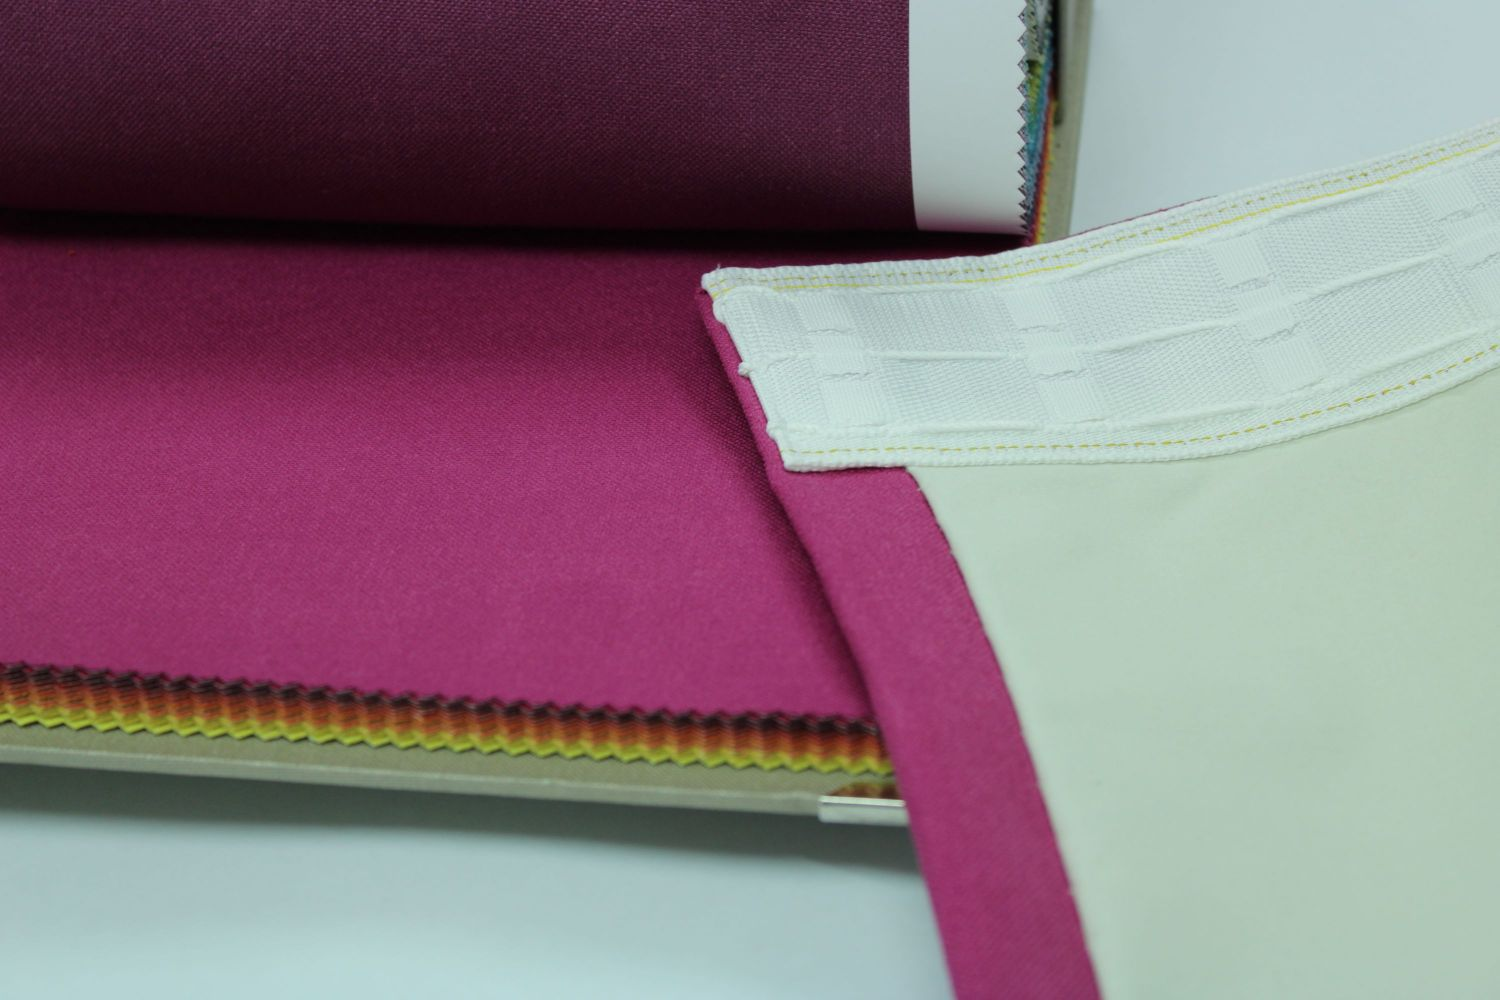 swatch book with pink fabric and finish on pink curtain